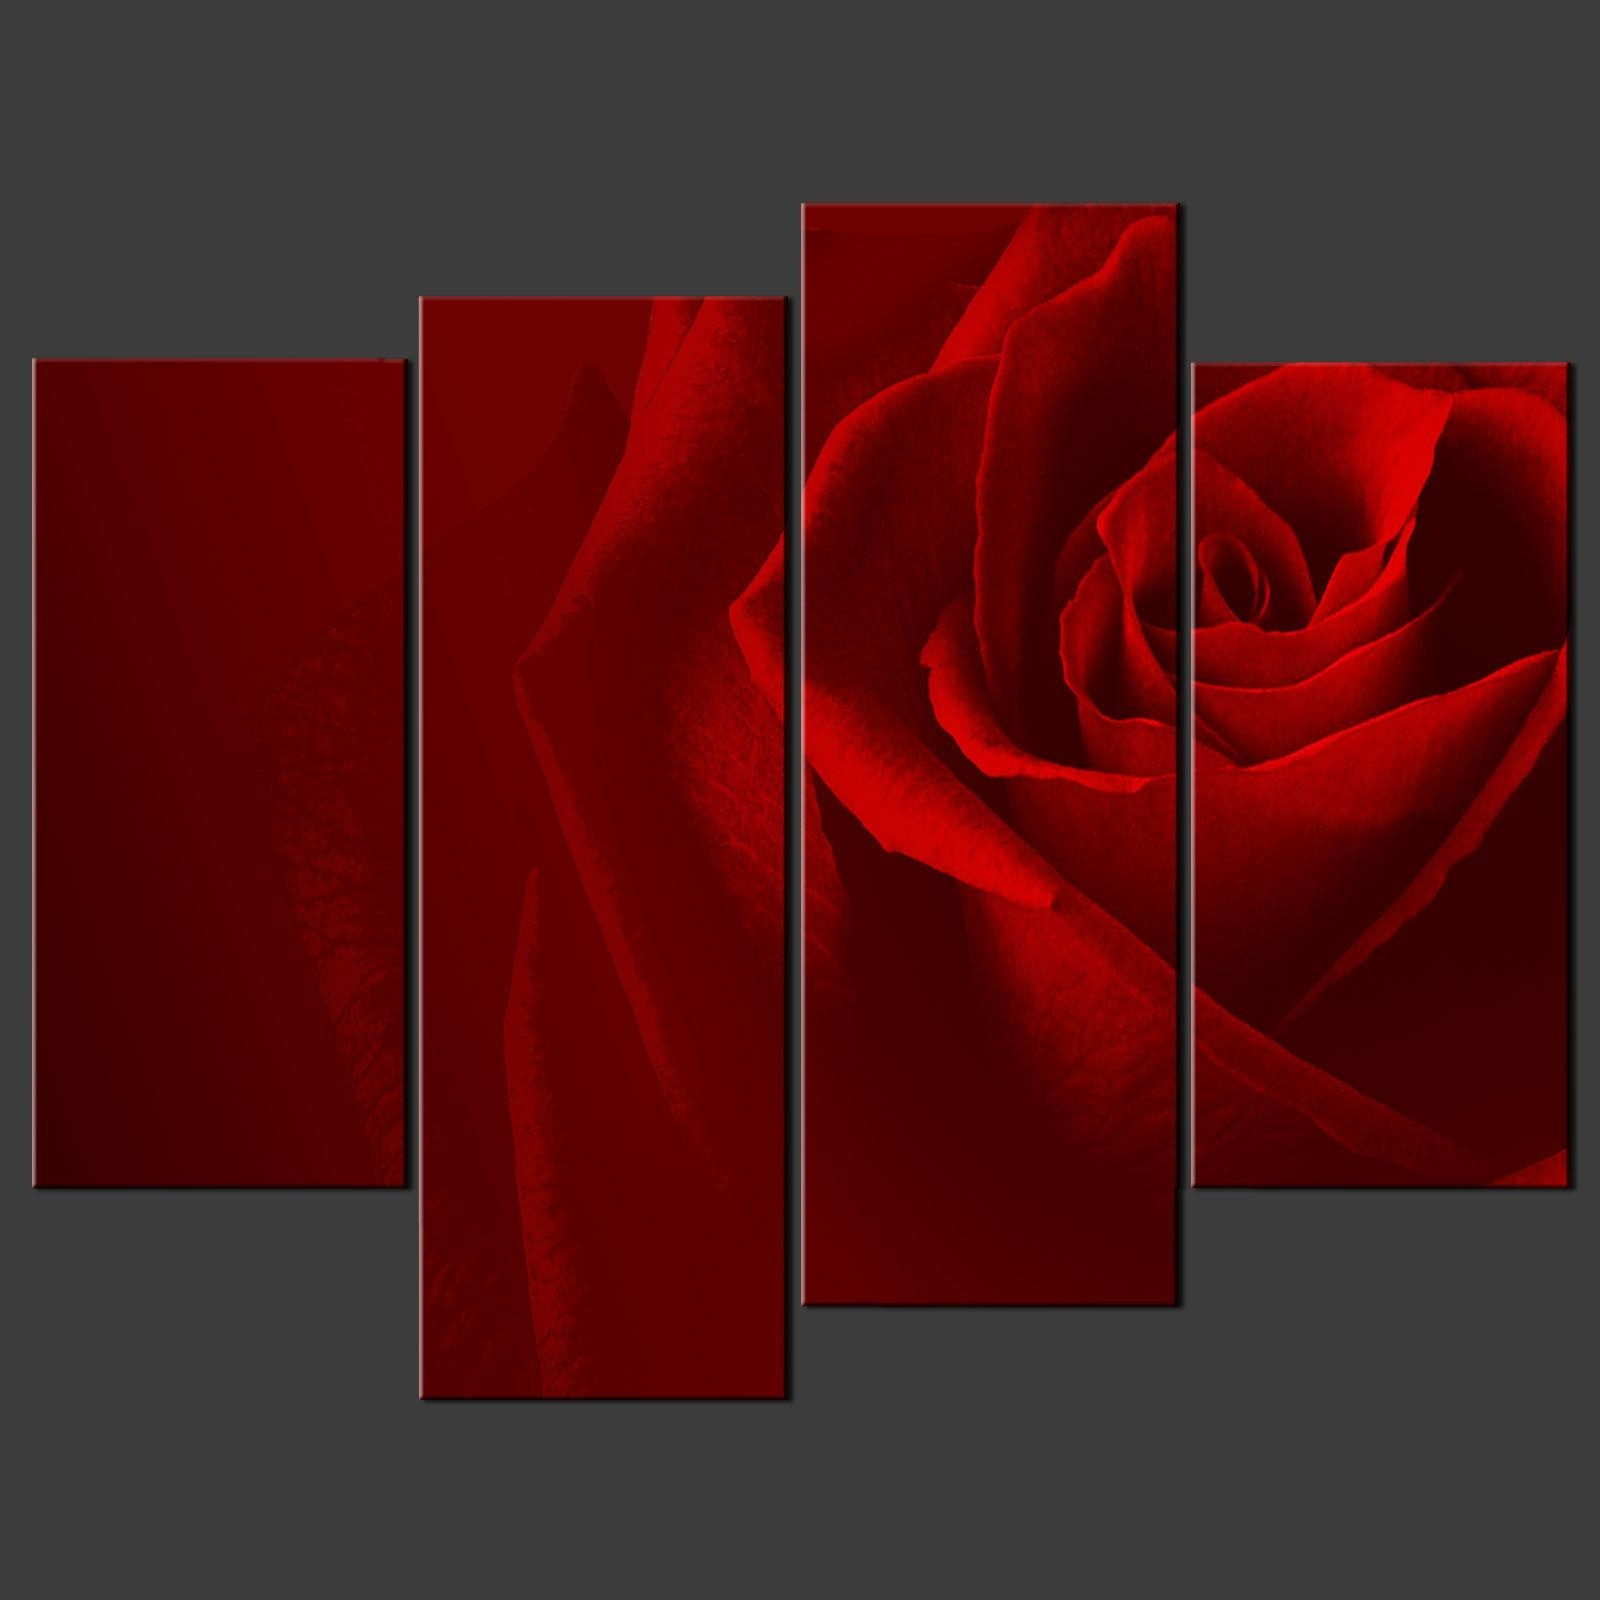 Red Rose Canvas Wall Art Pictures Prints Decor Larger Sizes Regarding Rose Canvas Wall Art (Image 19 of 20)